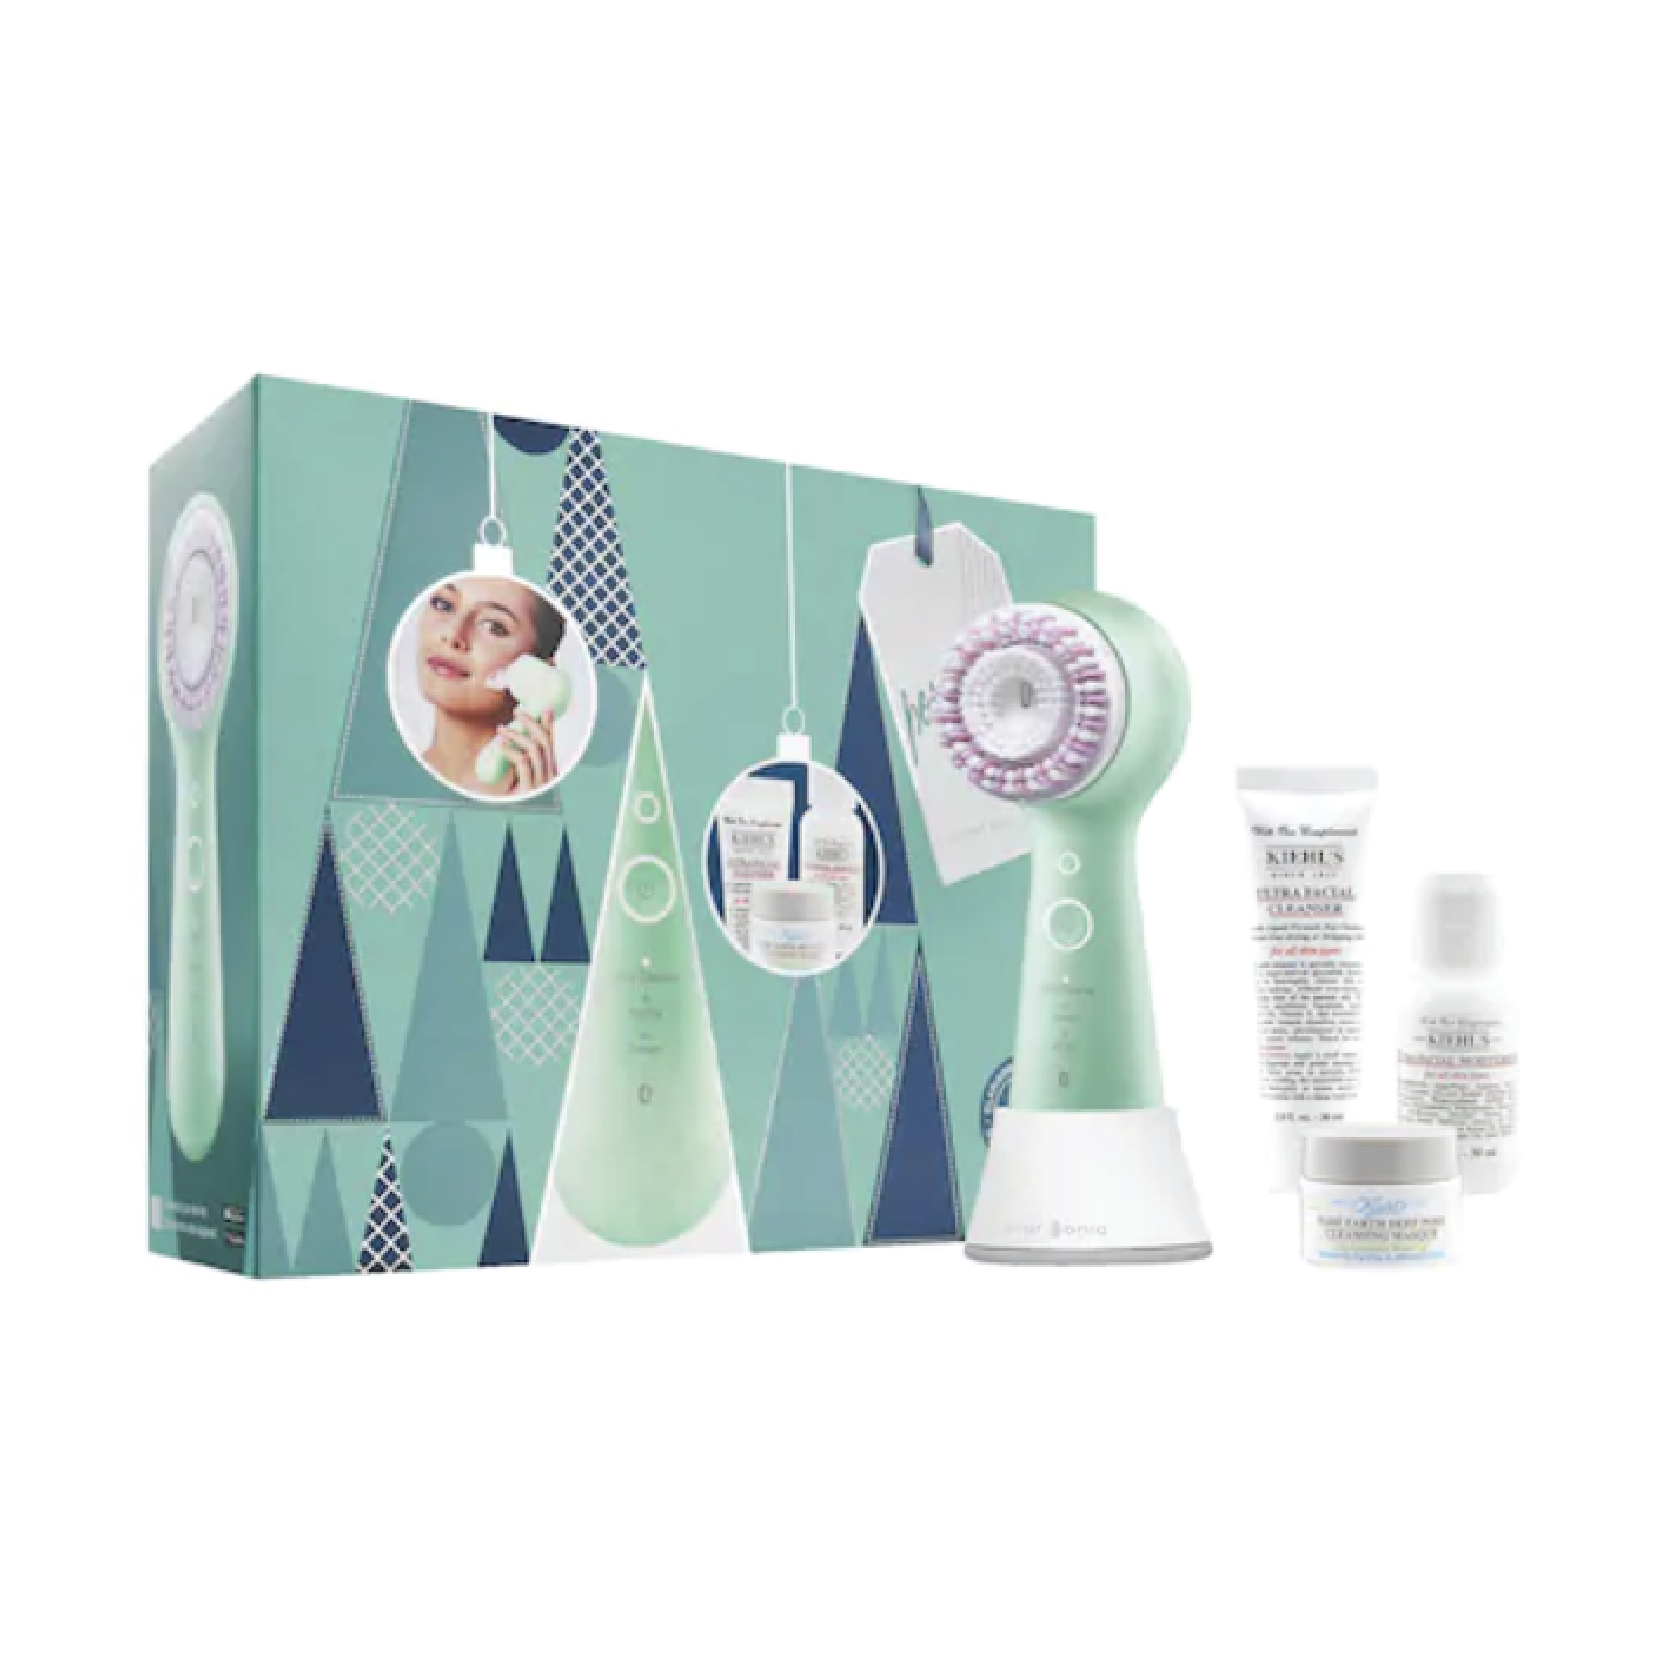 Clarisonic Poreless Skin Holiday Gift Set - $199 at SephoraThis is a perfect gift for men or women. Clarisonic will work wonders on your skin and Kiehl's is the perfect unisex brand to pair with it.